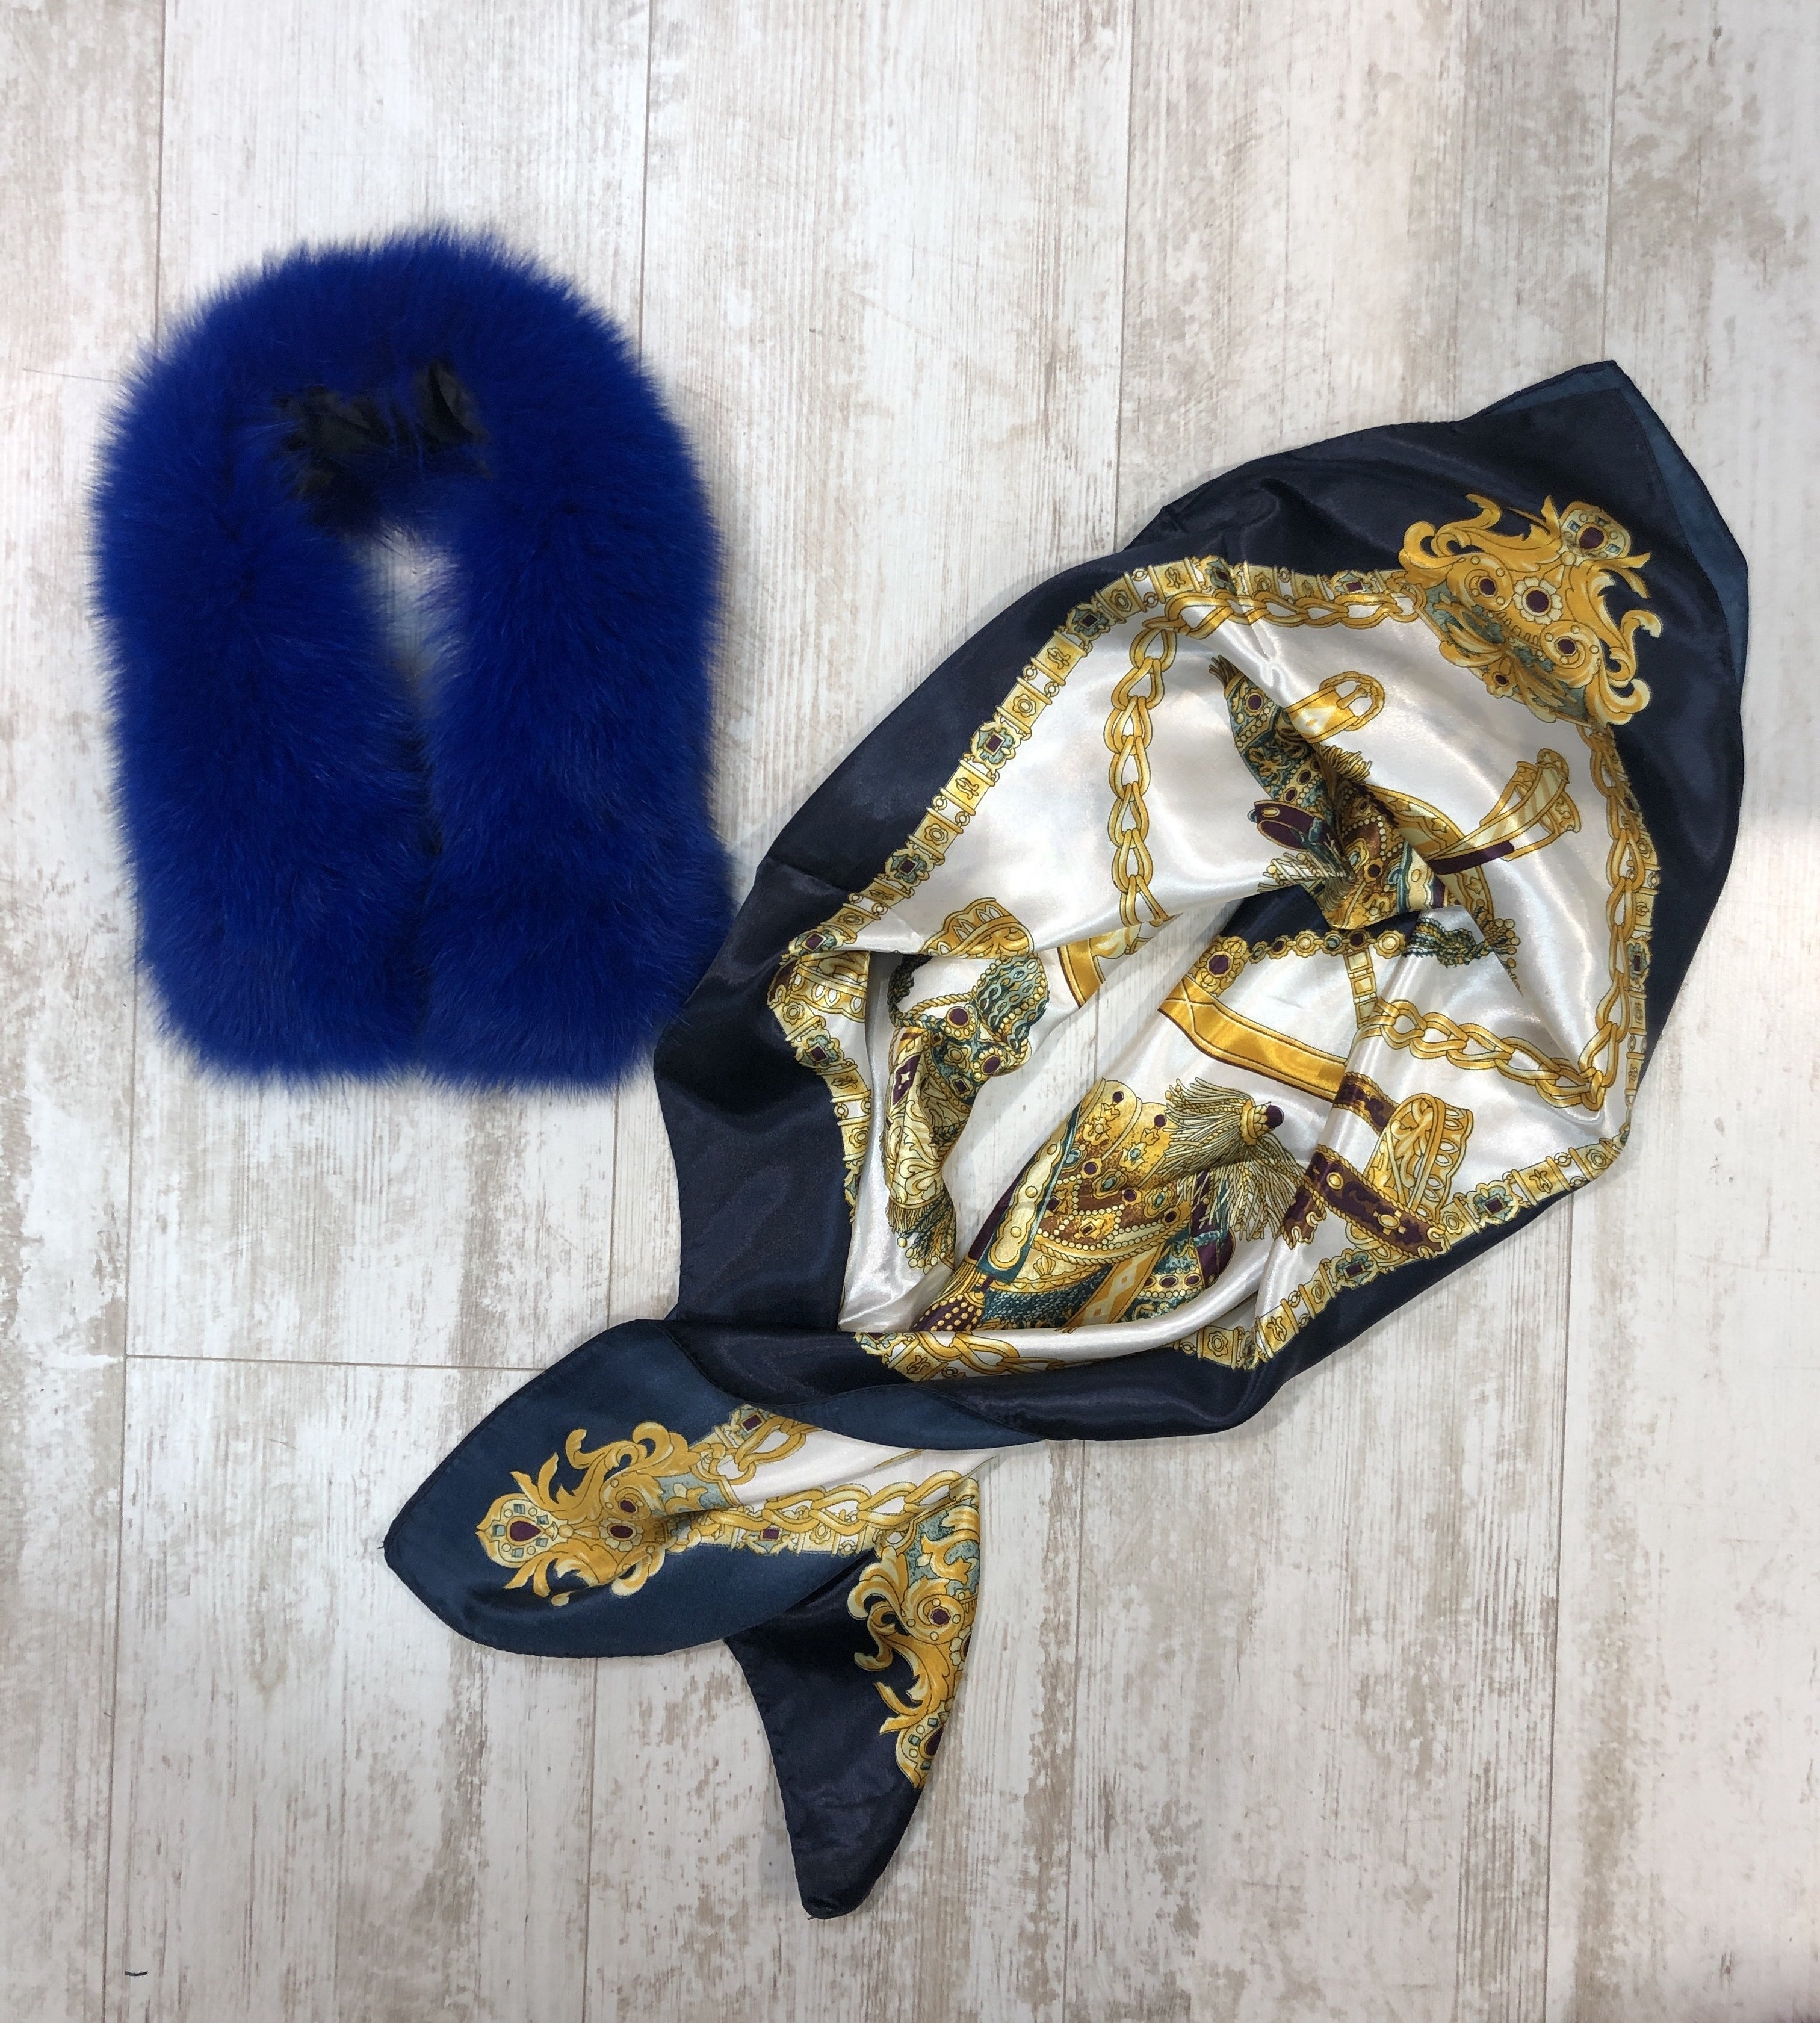 FS XA002 Fur Collar wIth Scarf royal blue one size